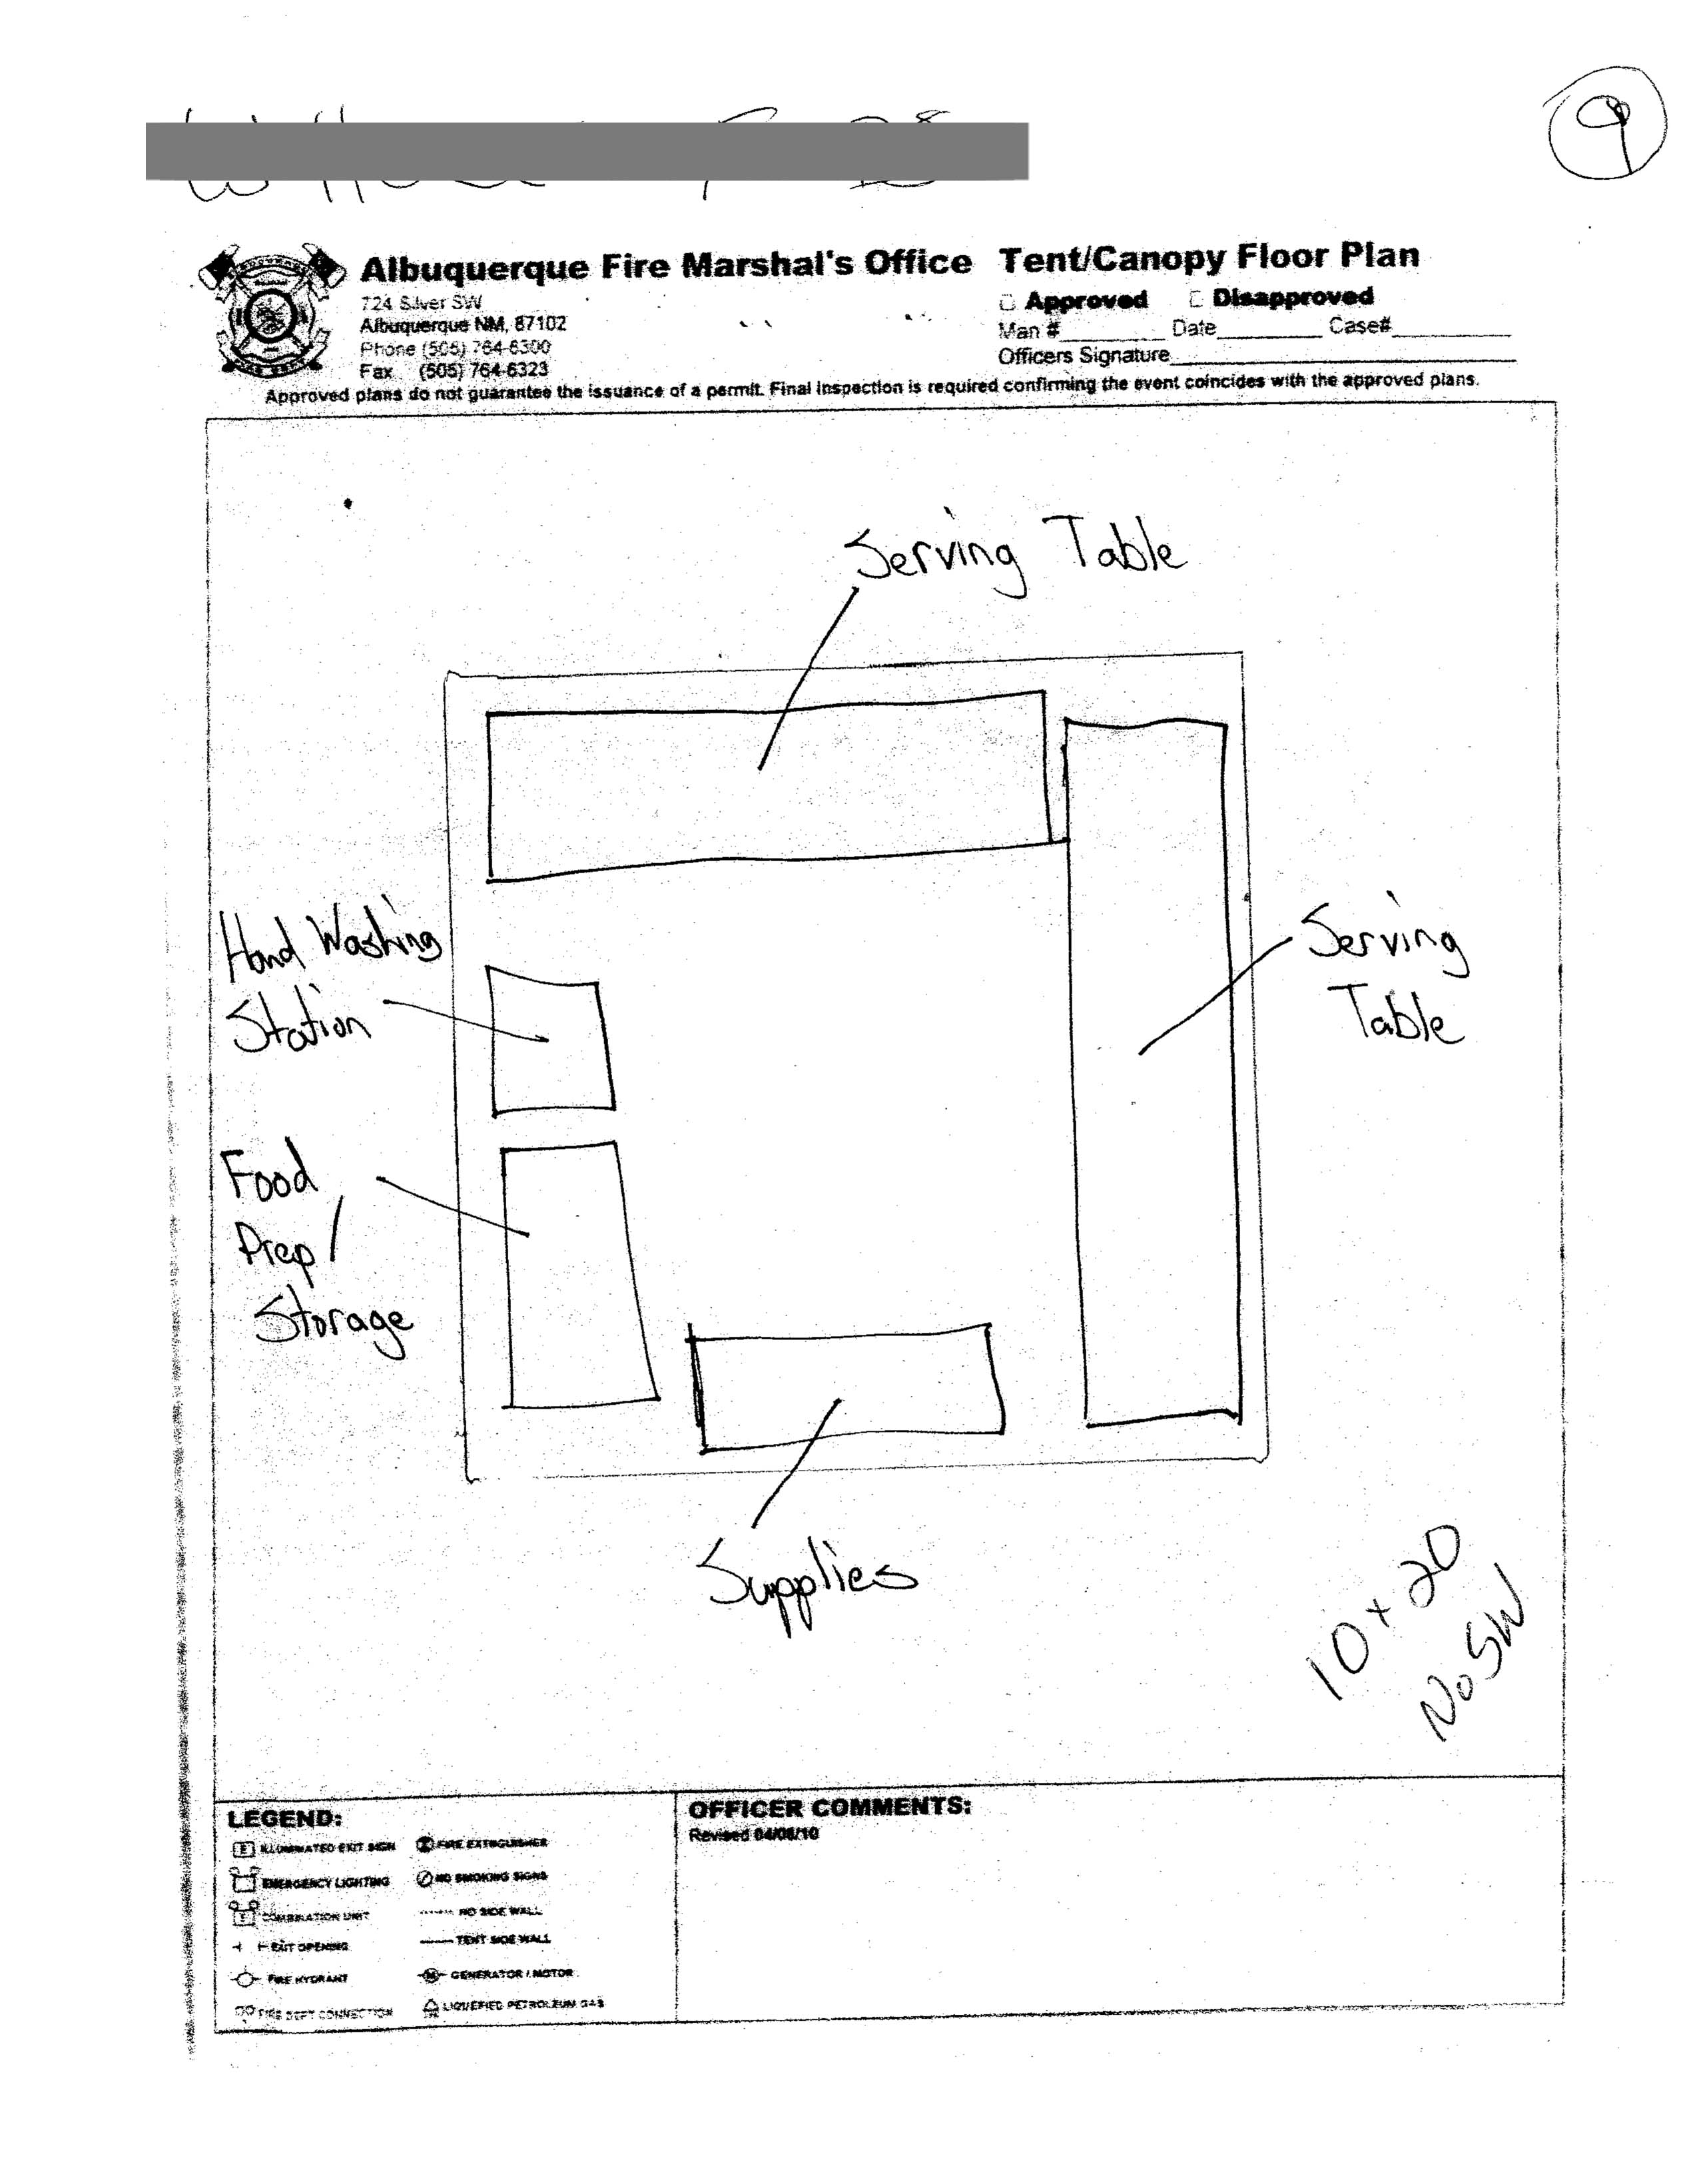 Food Tent Diagram Illustration Of Wiring Phone Booth City Albuquerque Fire Marshal Layout Form Blue River Rh Blueriverproductions Com 20 X 30